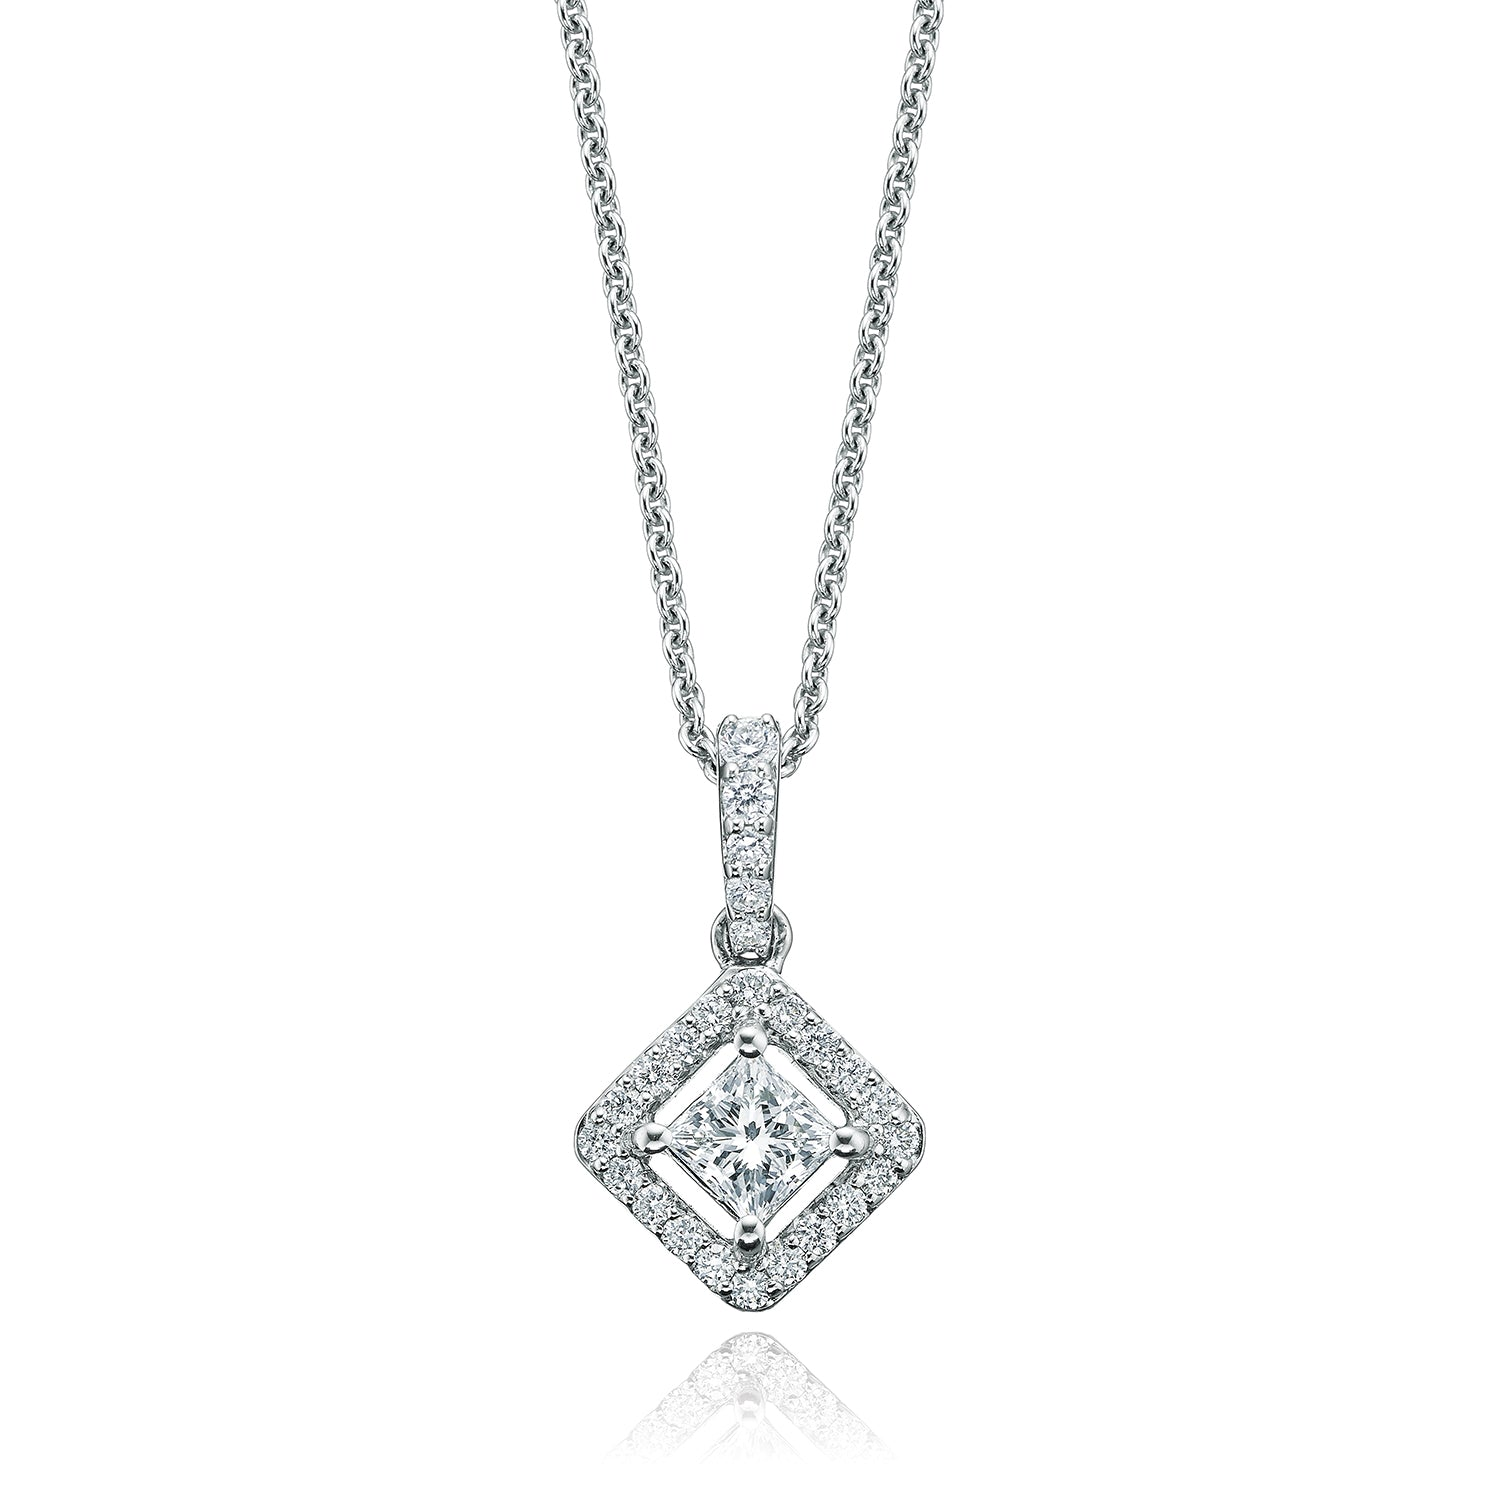 Rand 18ct White Gold Round Brilliant Cut with 1/2 CARAT tw of Diamond Pendant